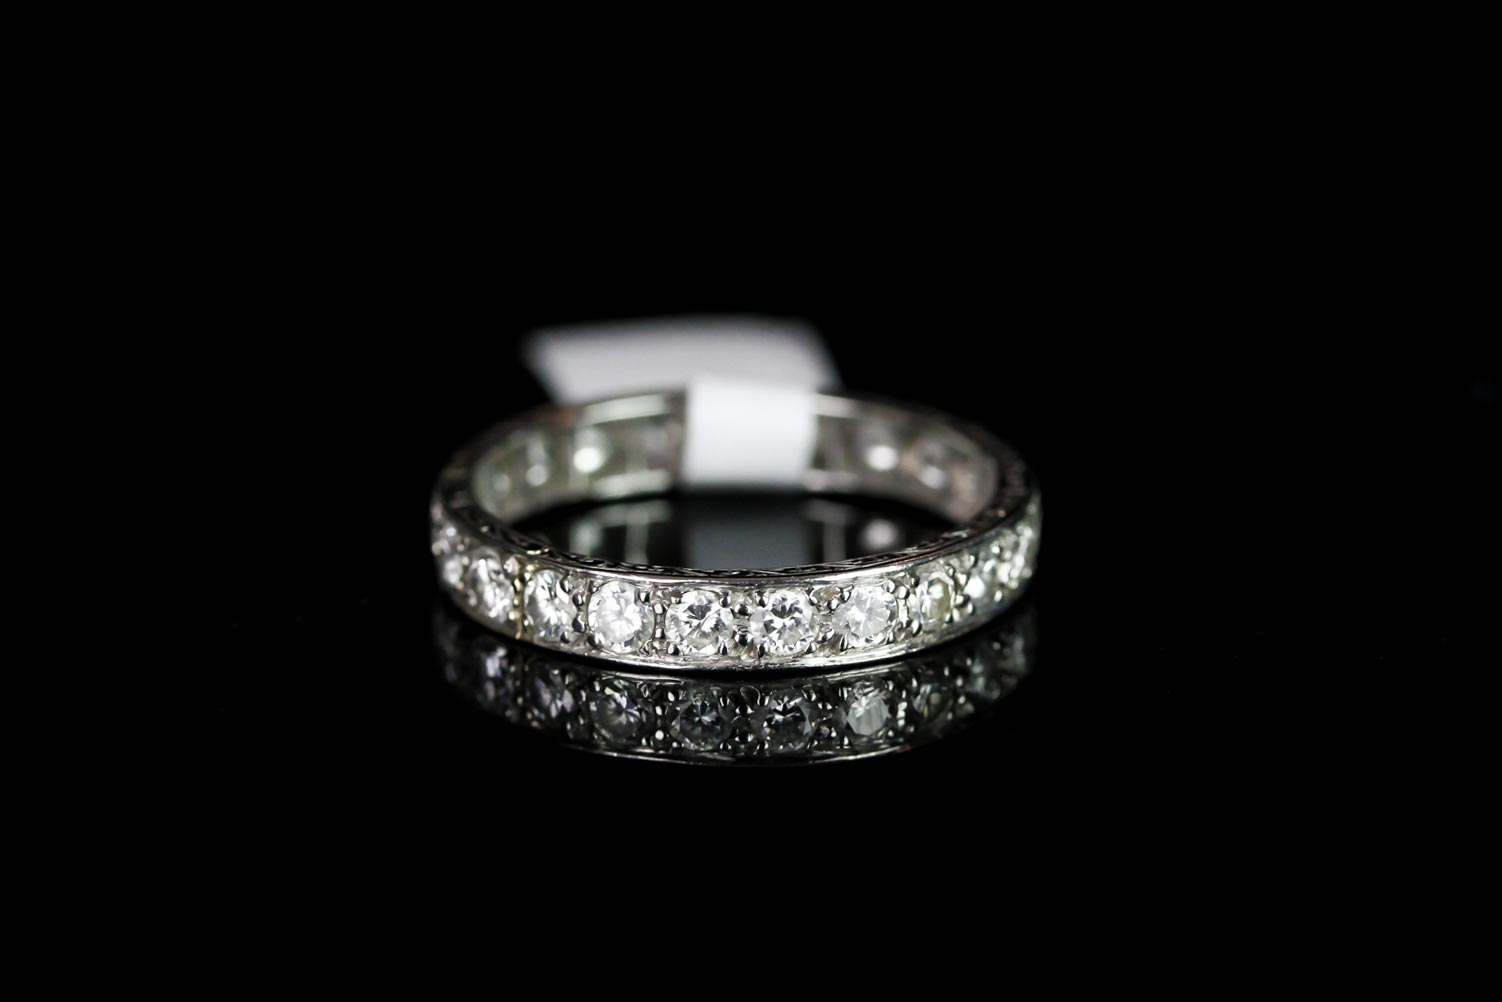 Lot 581 - PLATINUM FULL ETERNITY RING, estimated 0.40ct total, stamped PLAT, total weight 5.30gms, ring size